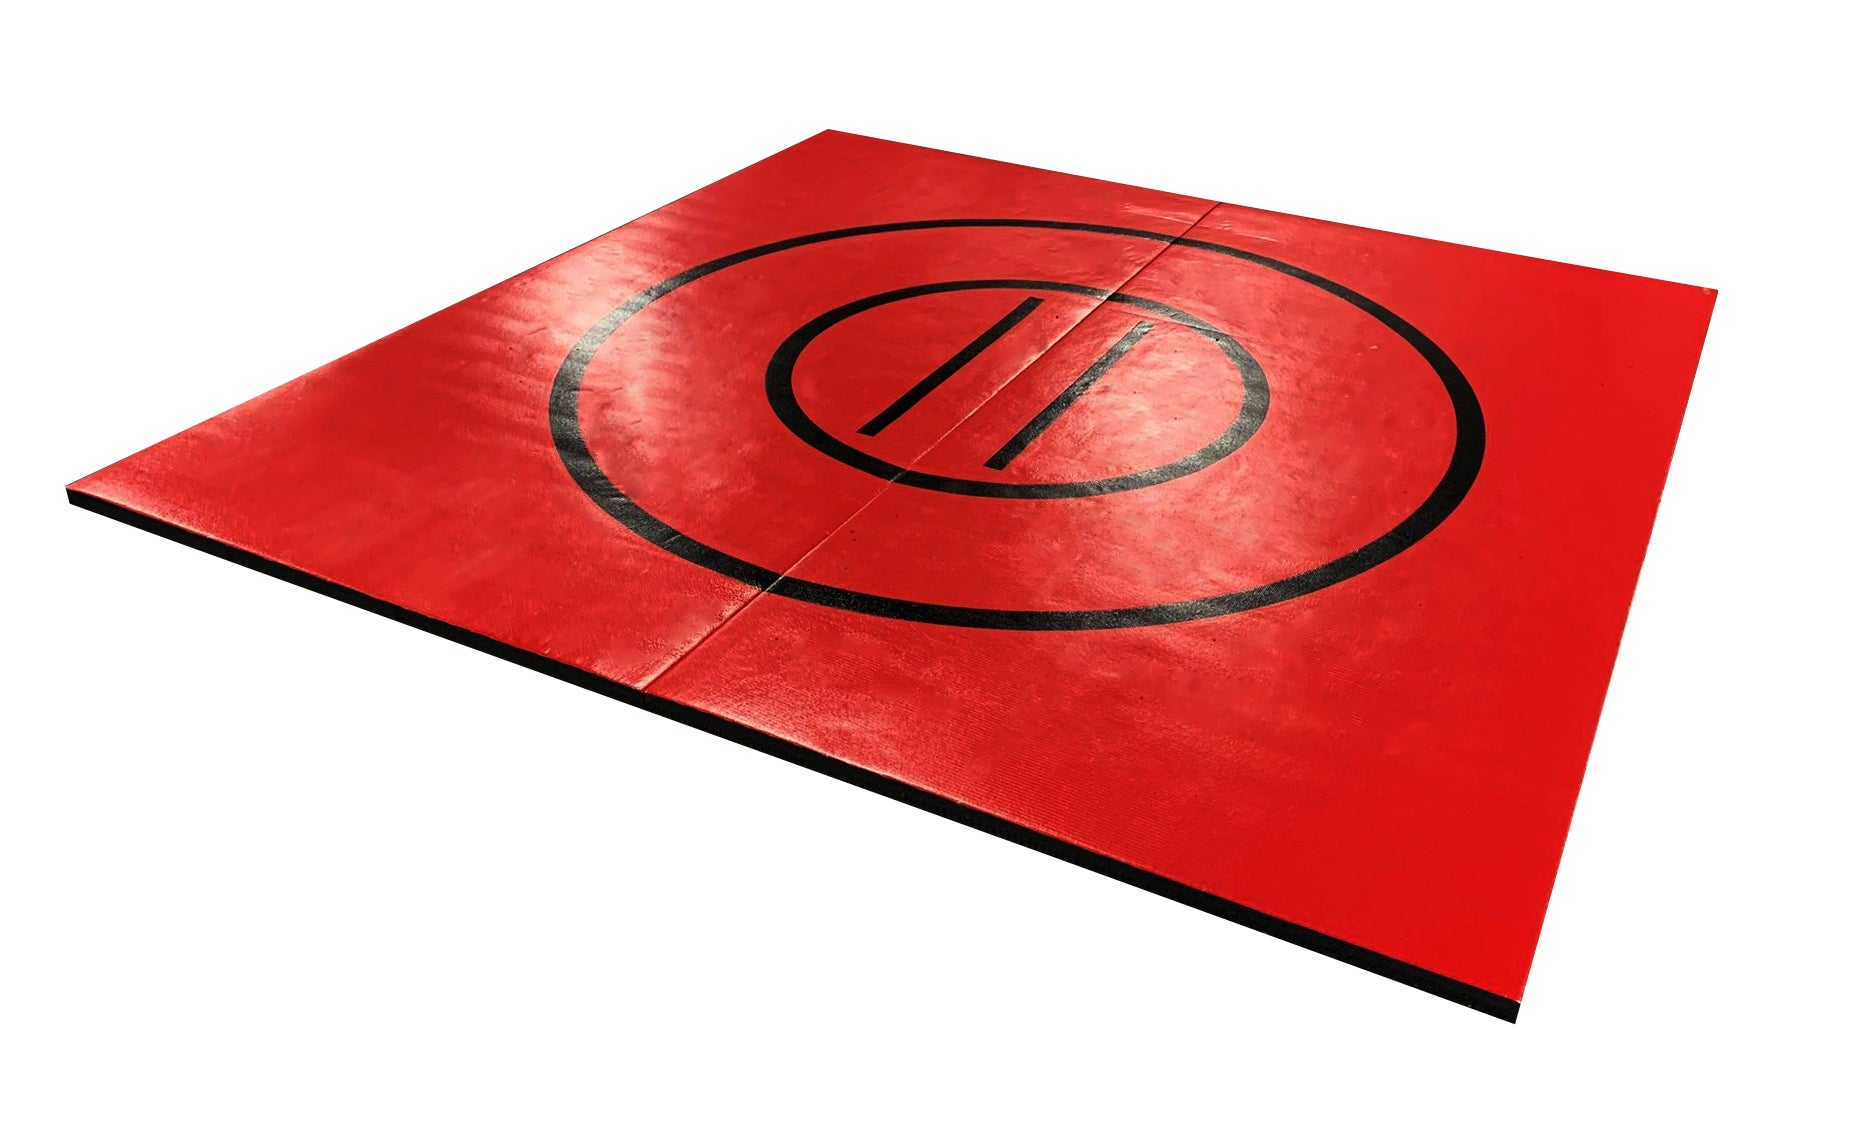 red and black jiu jitsu mat, jiu jitsu grappling mat